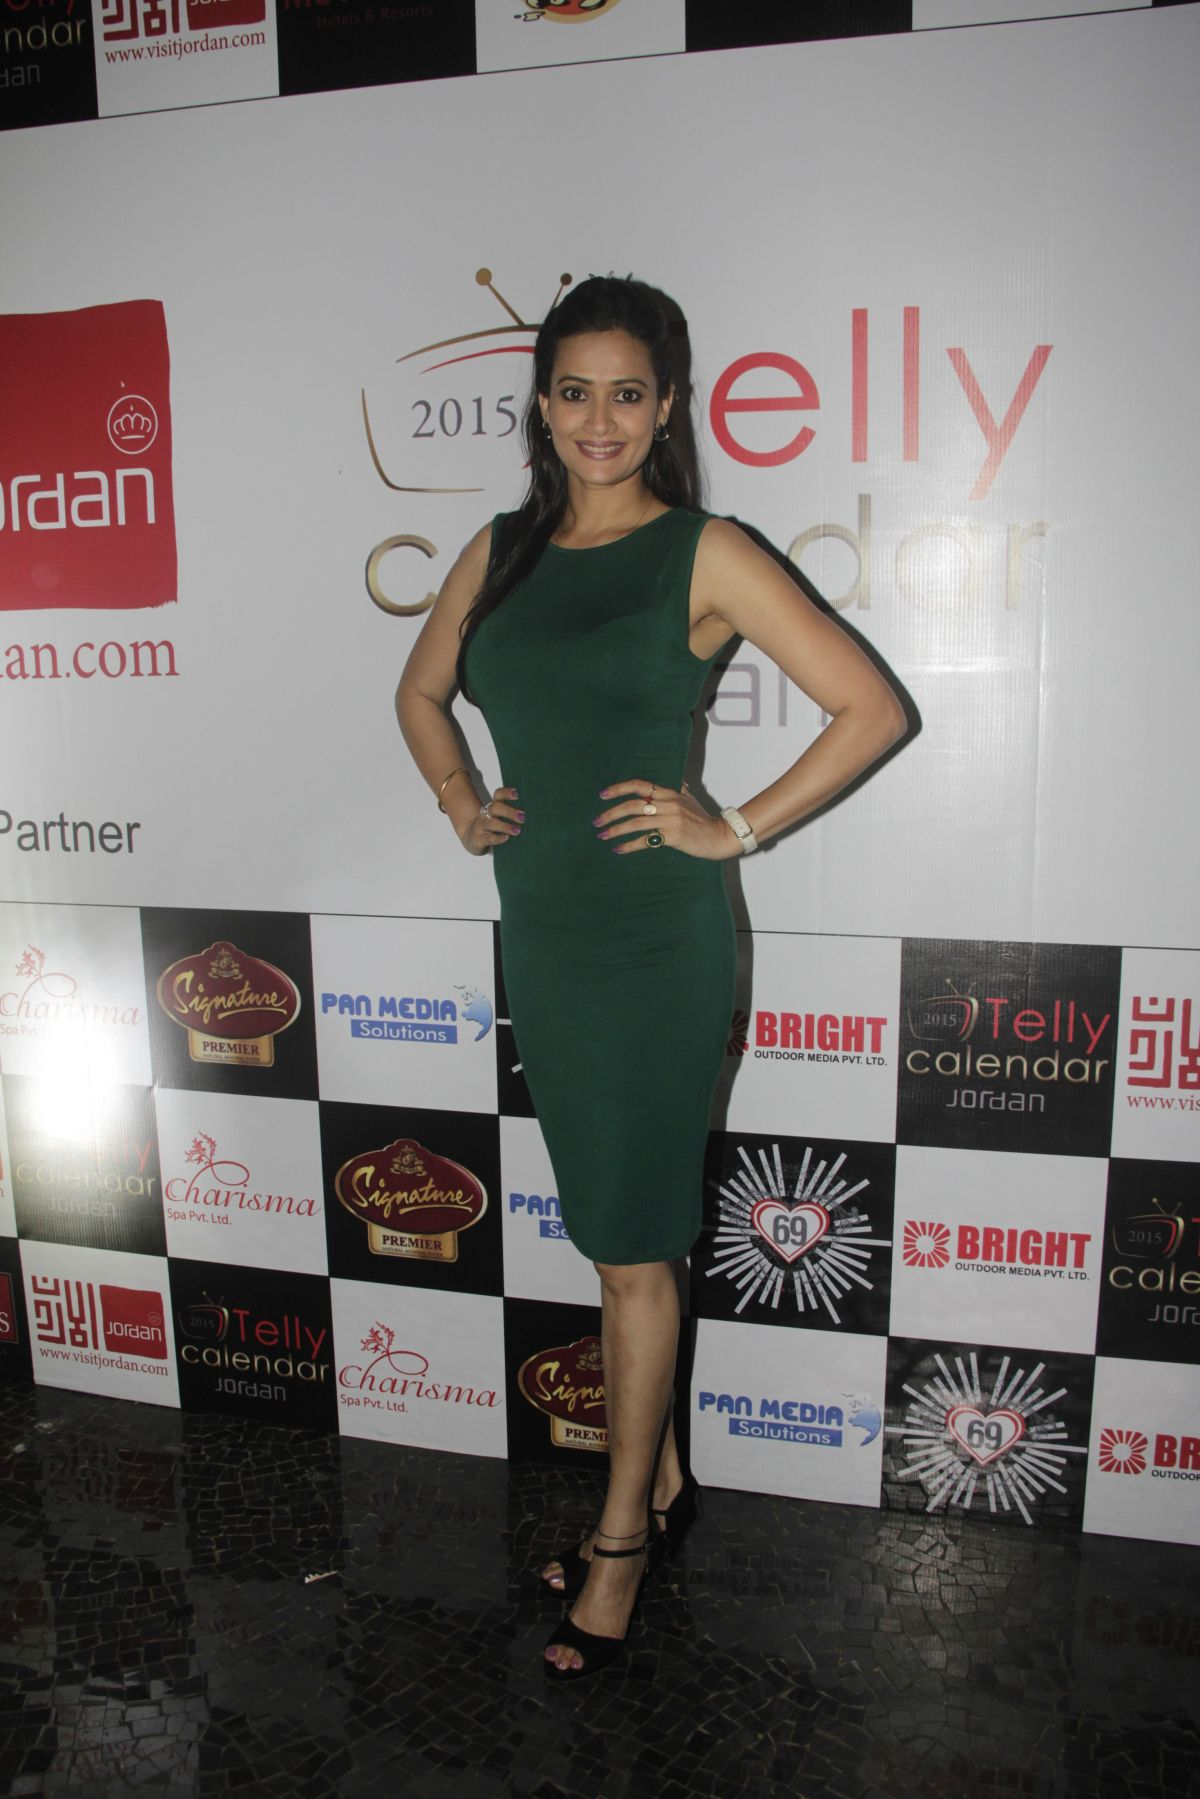 09Jasveer Kaur@Telly Calendar announcement party